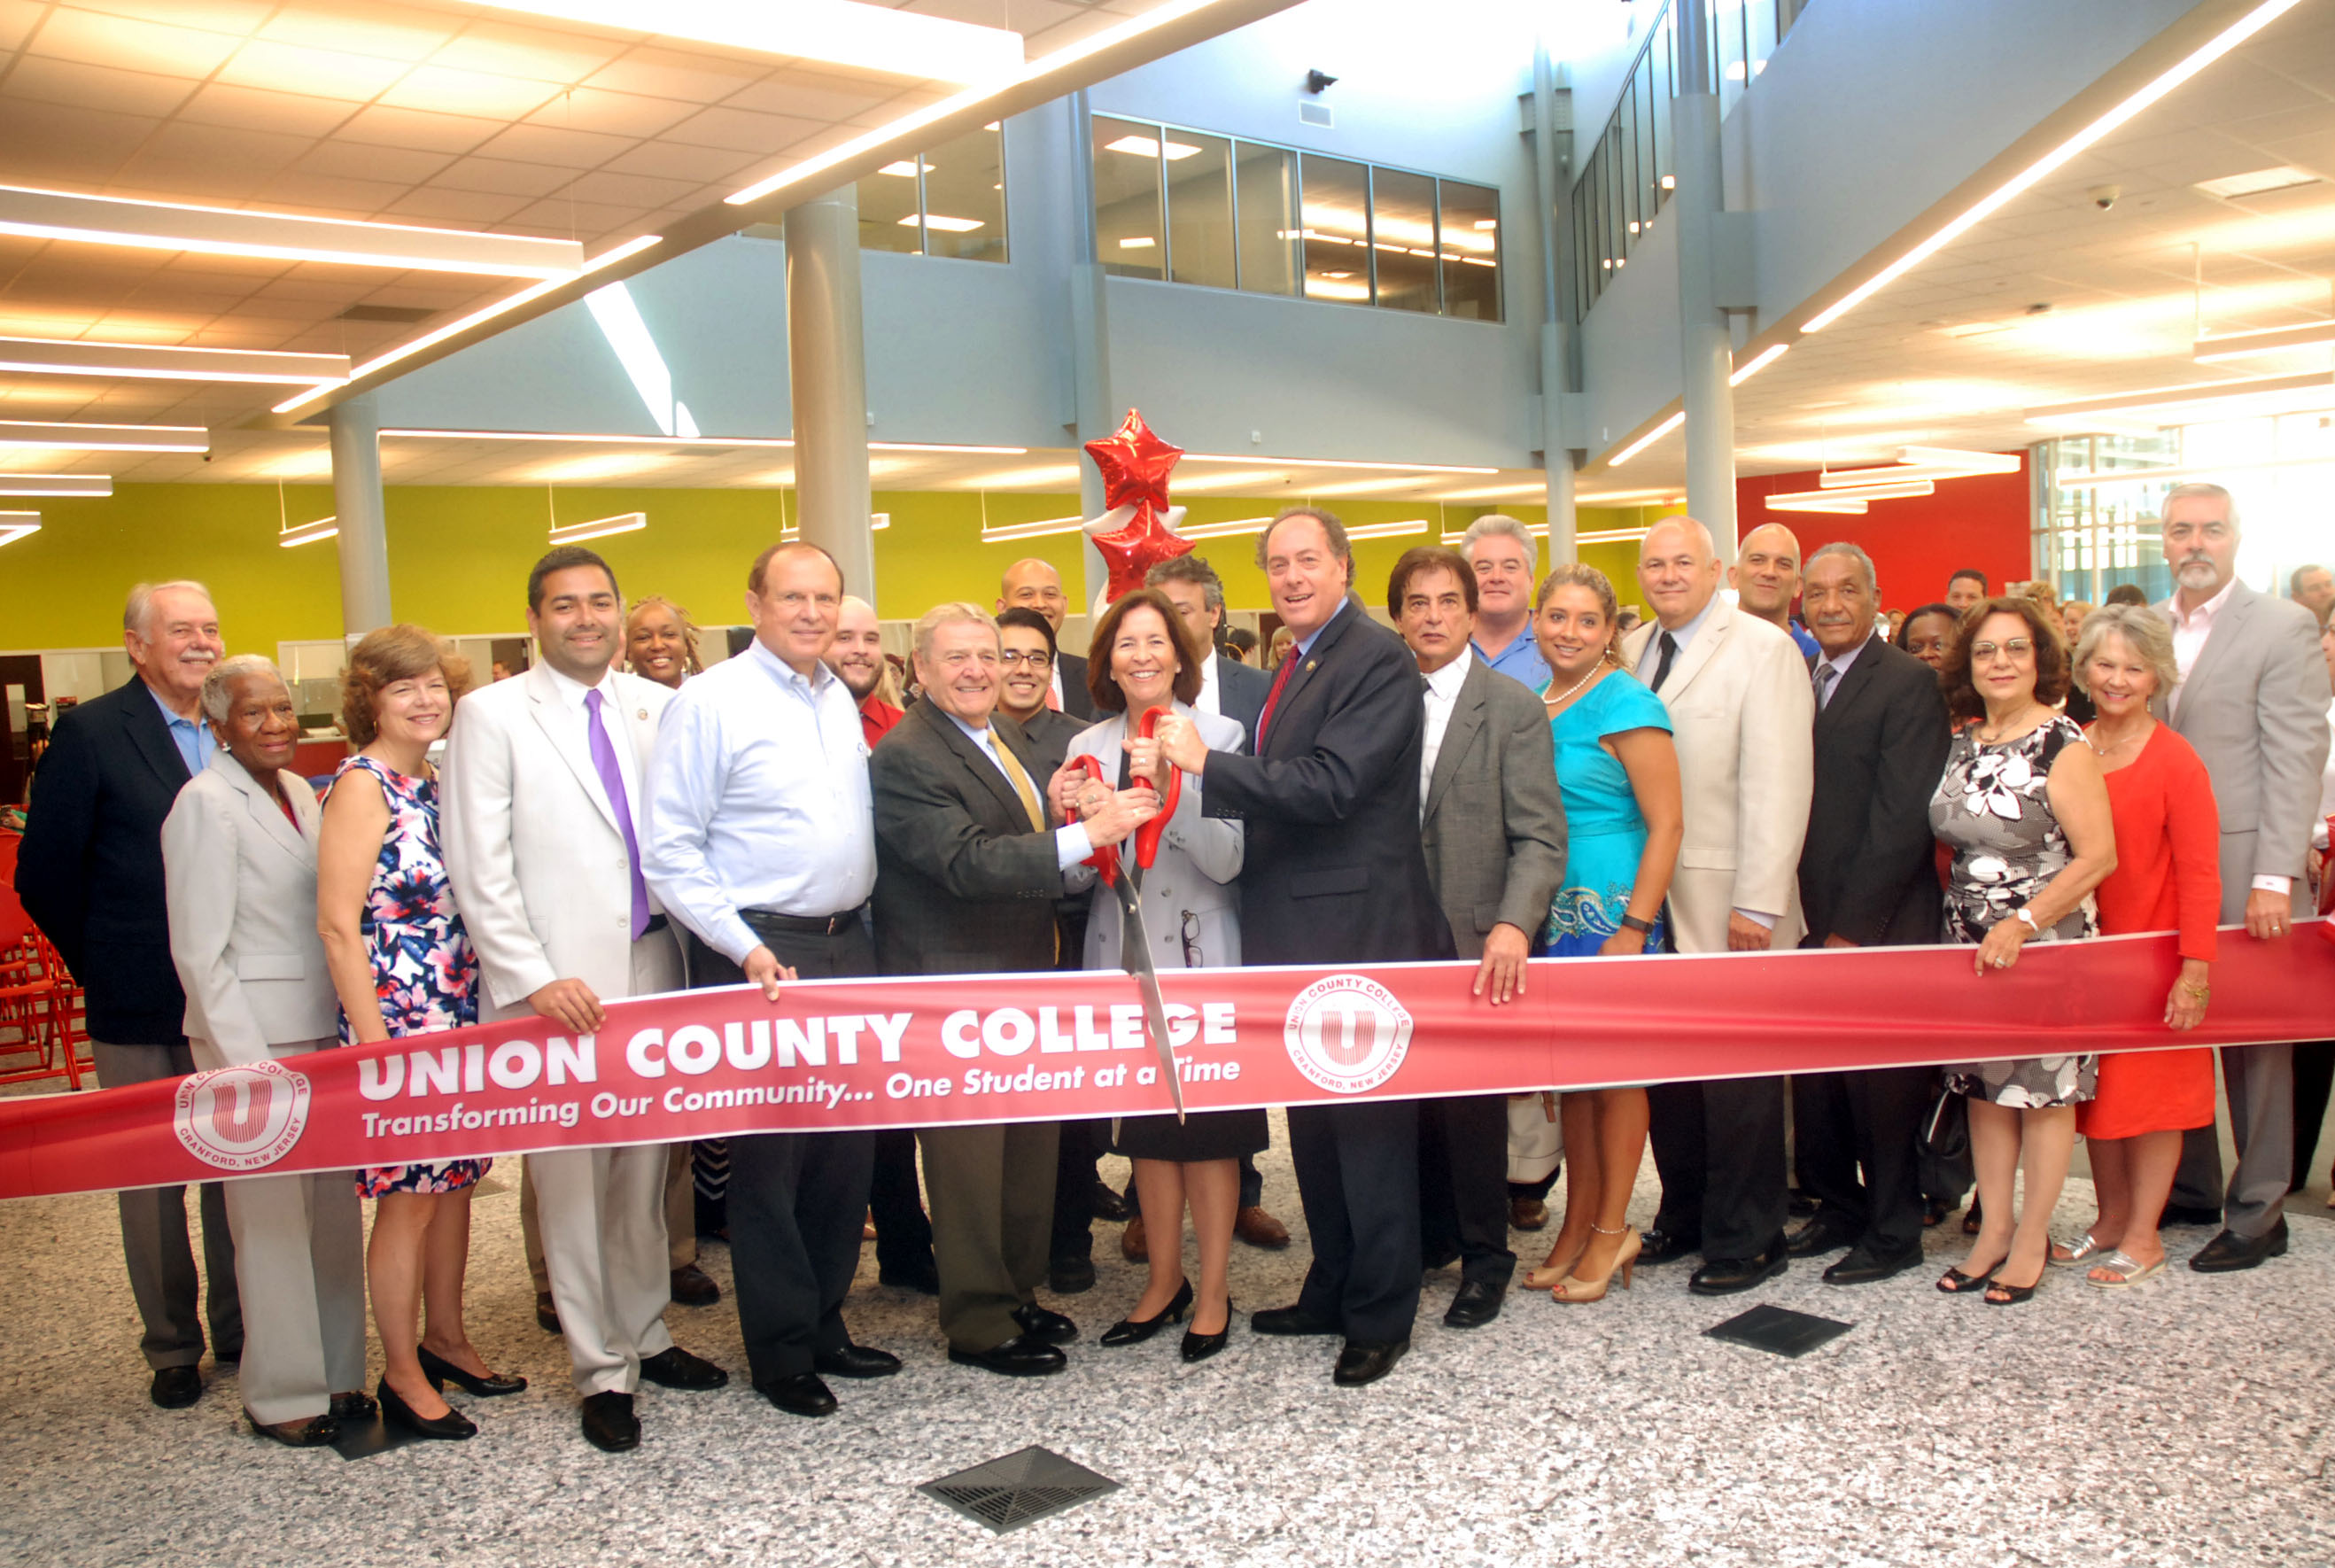 New jersey union county cranford - Union County Freeholder Chairman Bruce H Bergen Vice Chairman Sergio Granados And Freeholders Vernell Wright And Bette Jane Kowalski Joined Senator